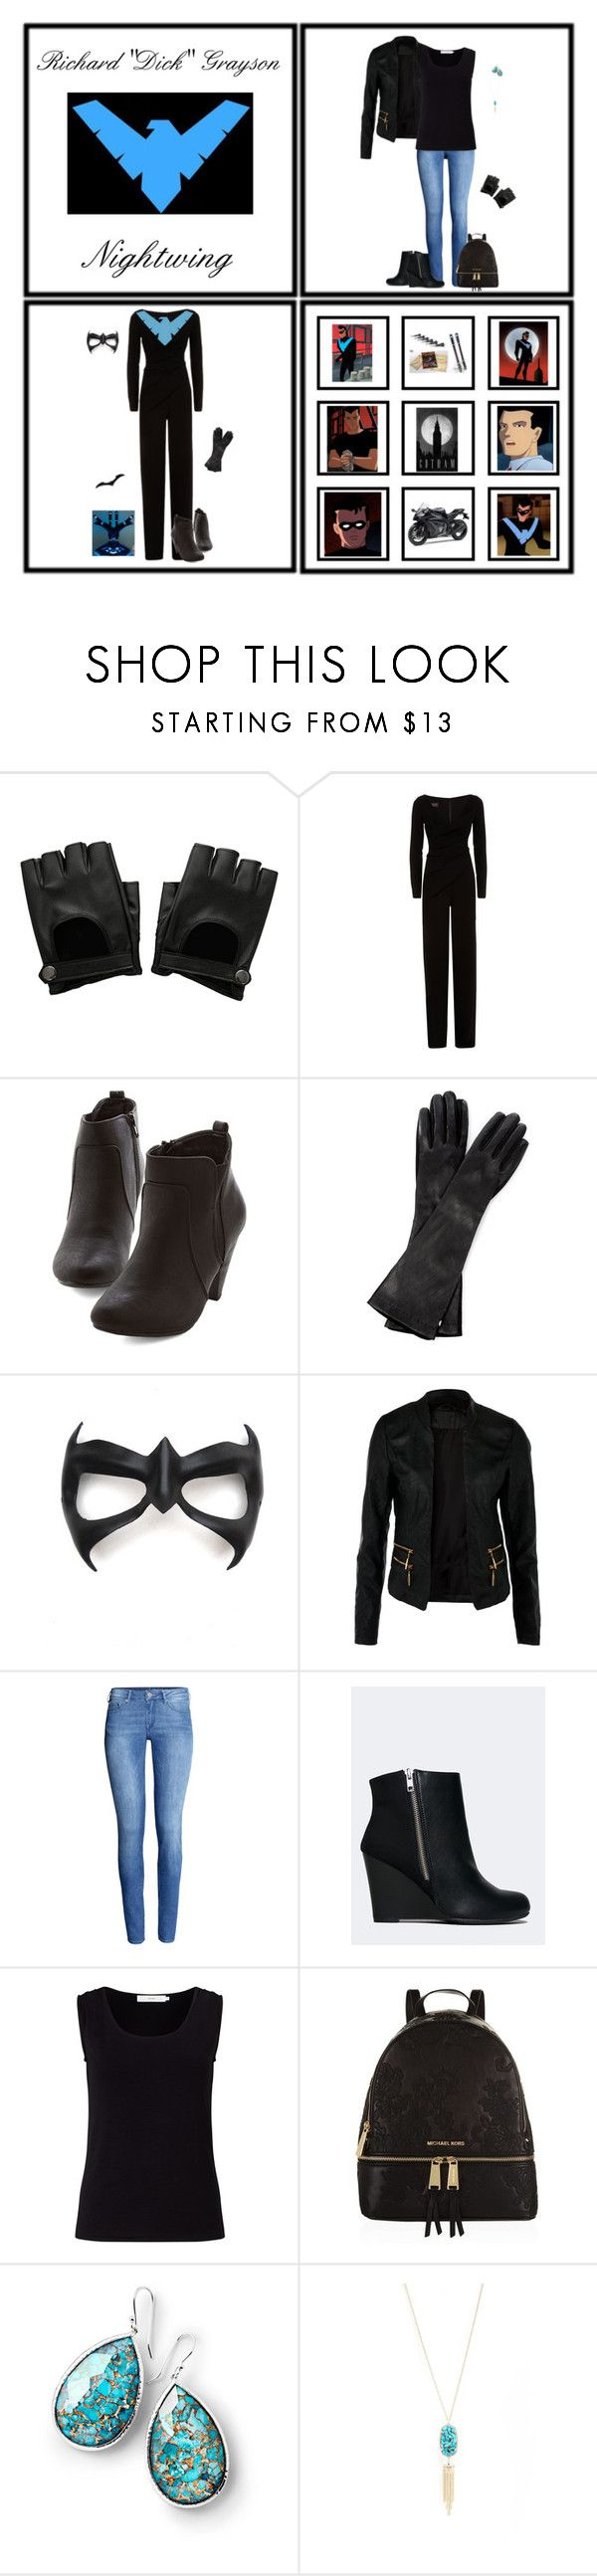 """""""Inspired by Richard """"Dick"""" Grayson/Nightwing (1252)"""" by trufflelover ❤ liked on Polyvore featuring Hot Topic, Talbot Runhof, Kawasaki, Sportmax, Masquerade, H&M, Report, John Lewis, MICHAEL Michael Kors and Ippolita"""